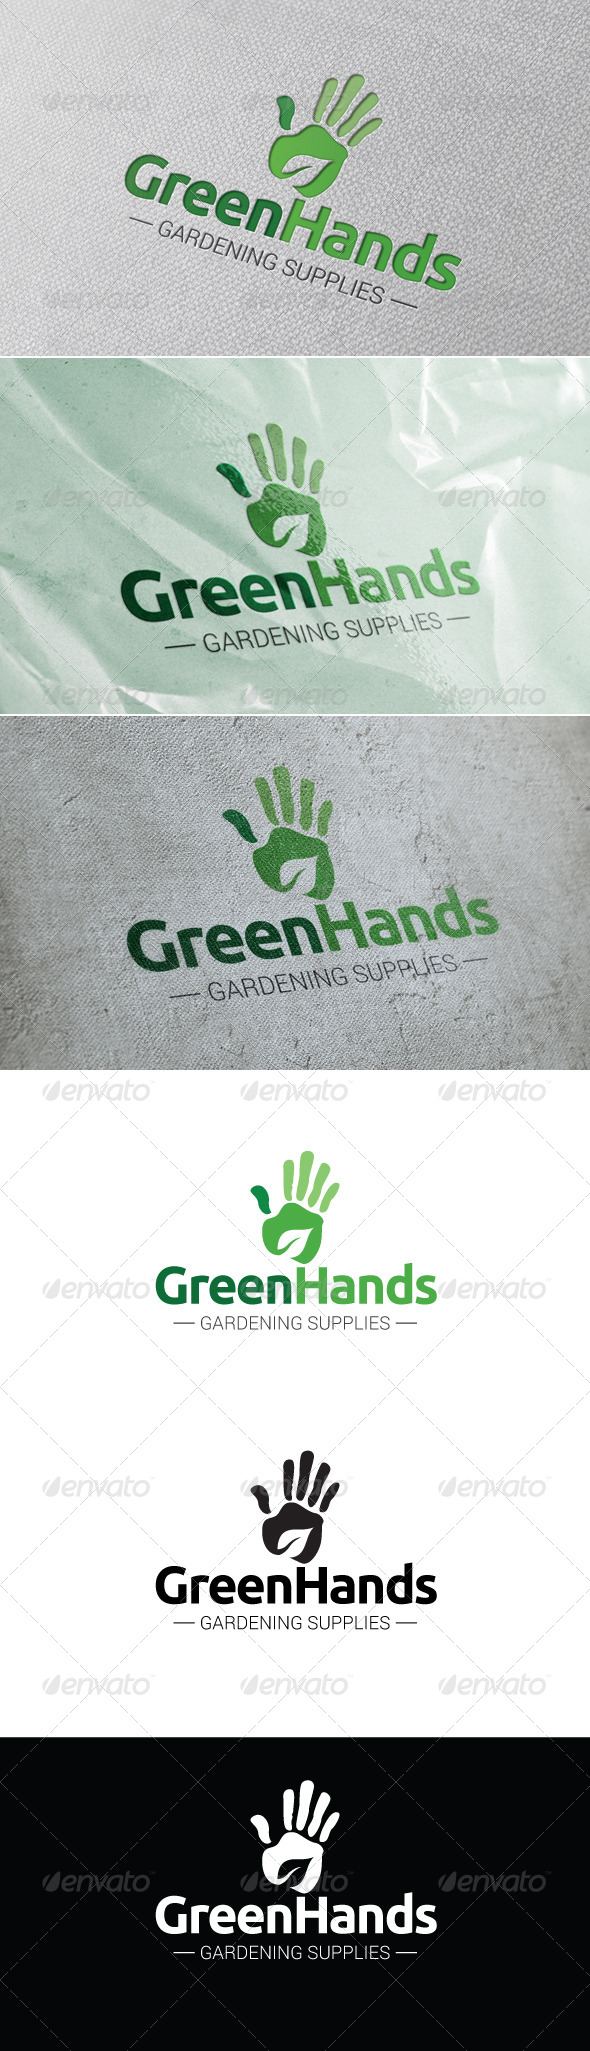 GraphicRiver Green Hands Logo Template 7368640